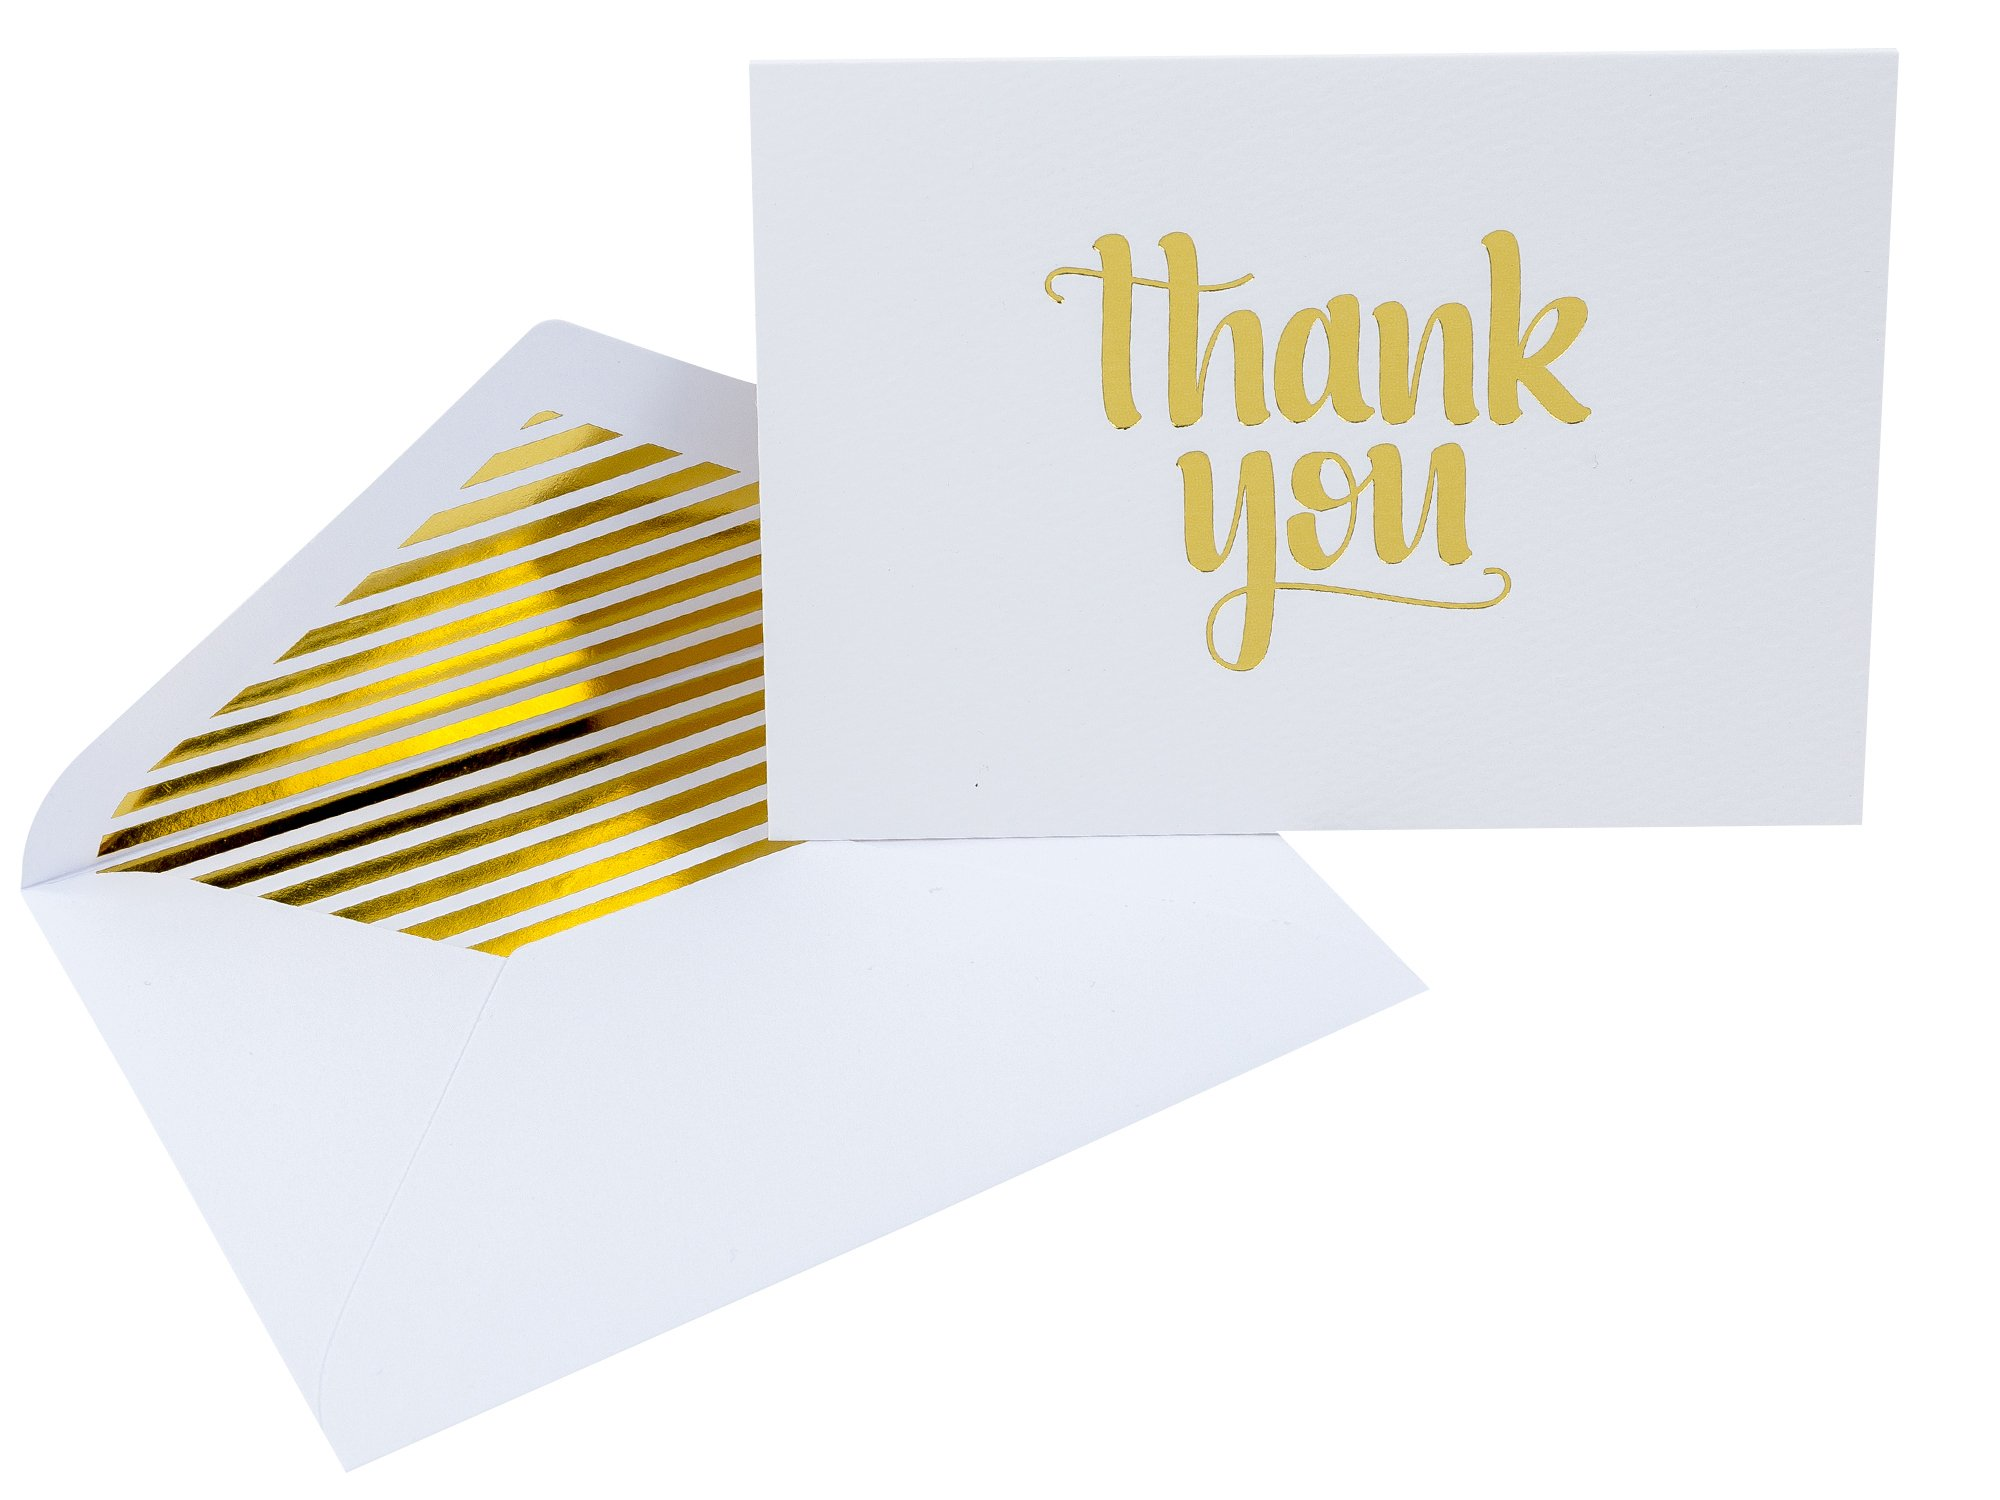 Thank You Cards With Matching Envelopes & Decorative Stickers By White Sand Products: Pack Of 25 Premium Gold Foil Letterpress Thank You Notes For Weddings, Birthdays, Clients, Baby Showers